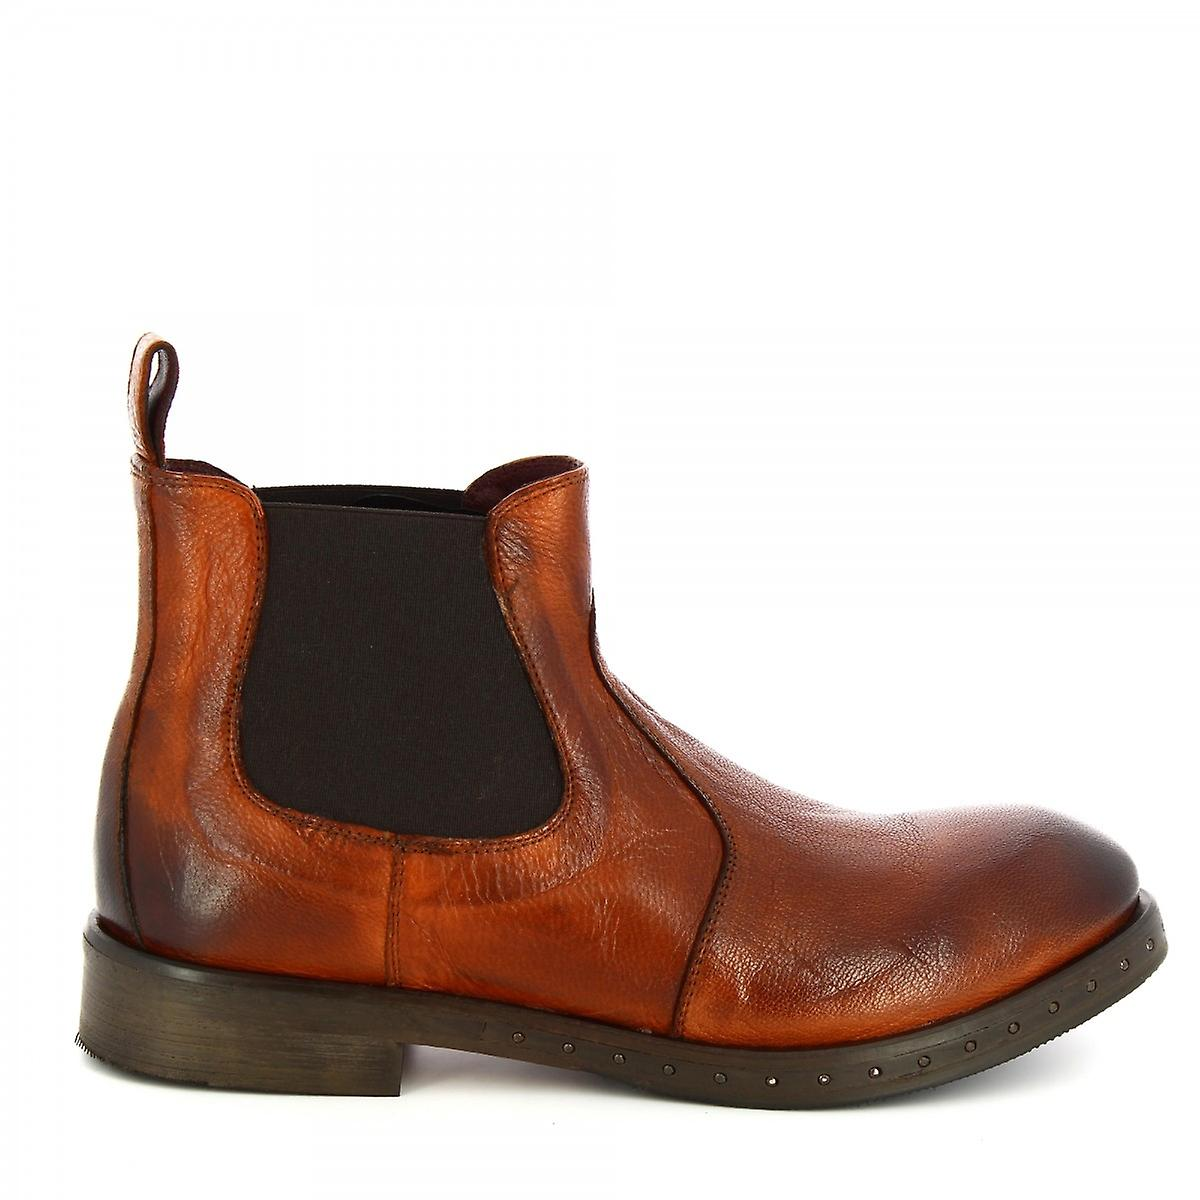 Leonardo Shoes Women's handmade fashion ankle boots in brown calf leather